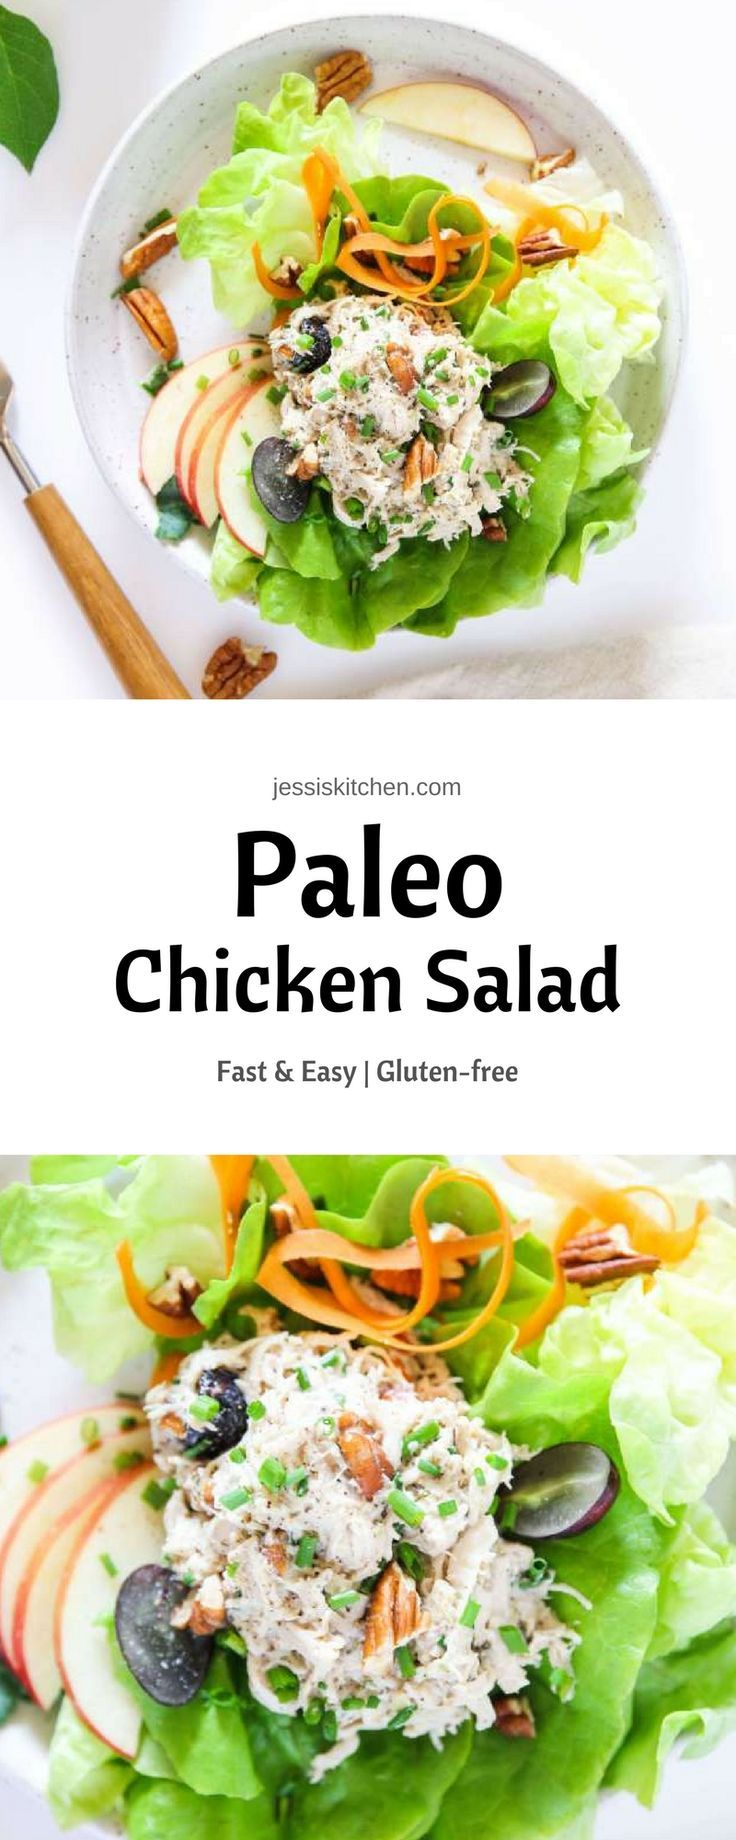 275 best Paleo Recipes images on Pinterest | Clean eating recipes ...